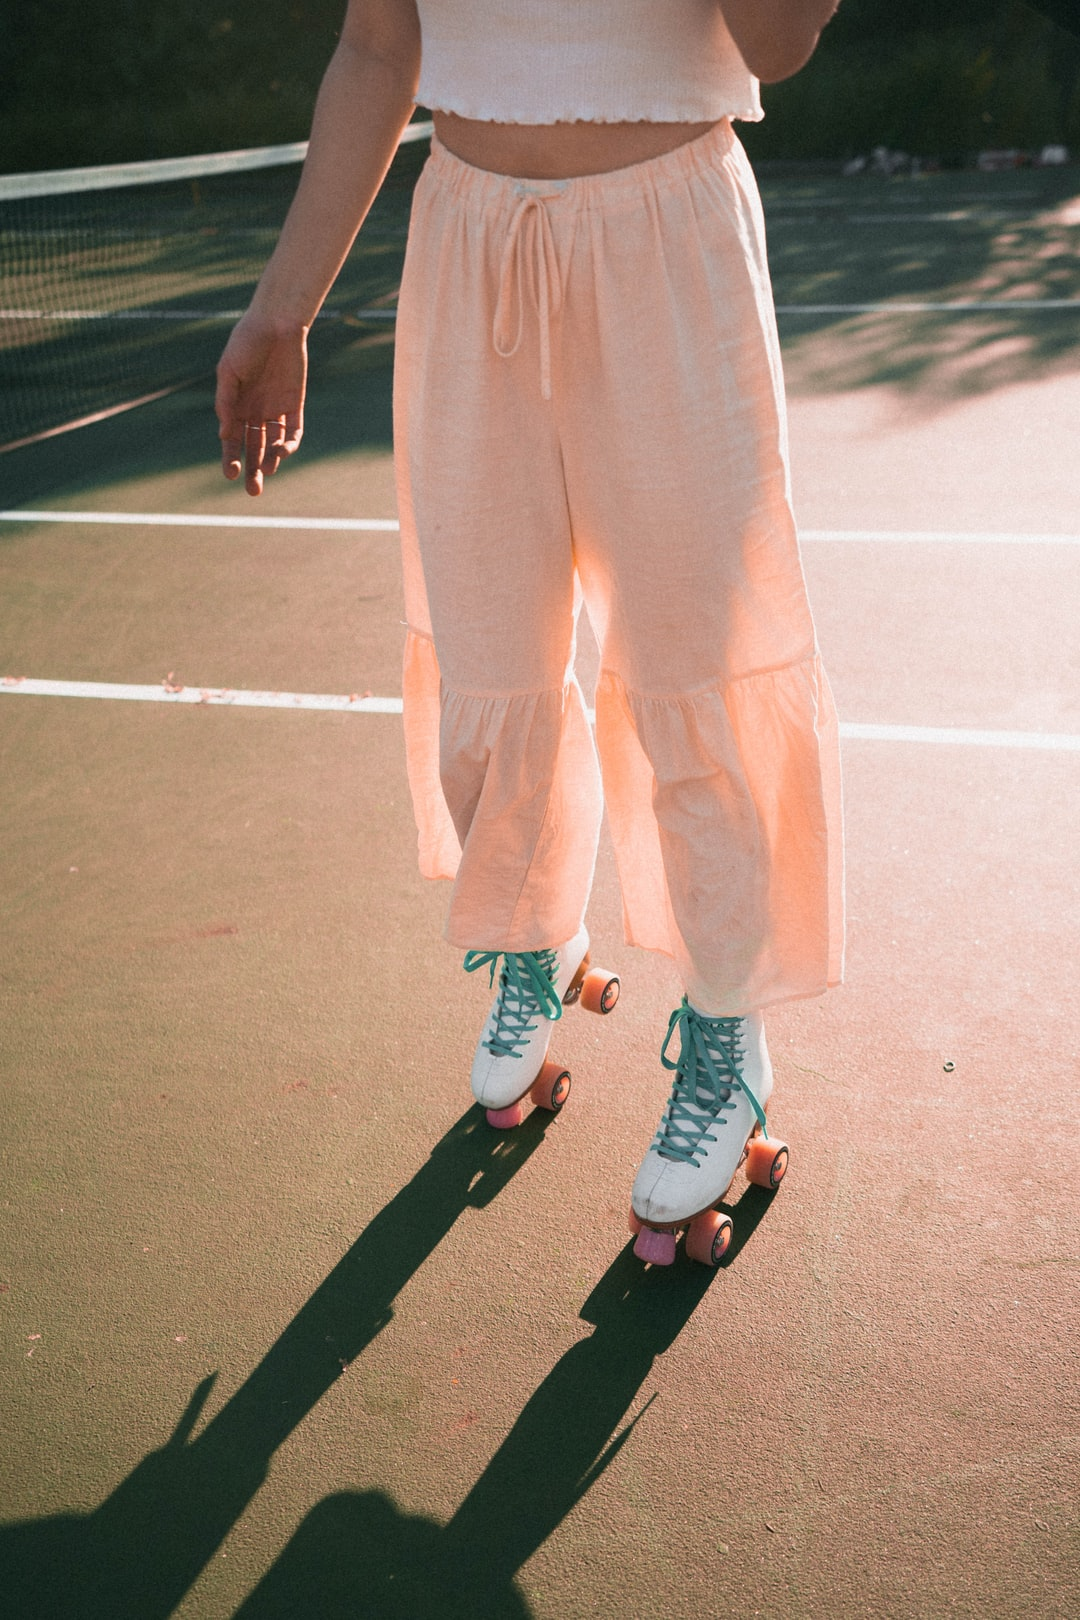 A GIRL WEARING WHITE IMPALA QUAD ROLLER SKATES ON A TENNIS COURT (RETRO/VINTAGE AESTHETIC). | Follow me on insta @calebrussell